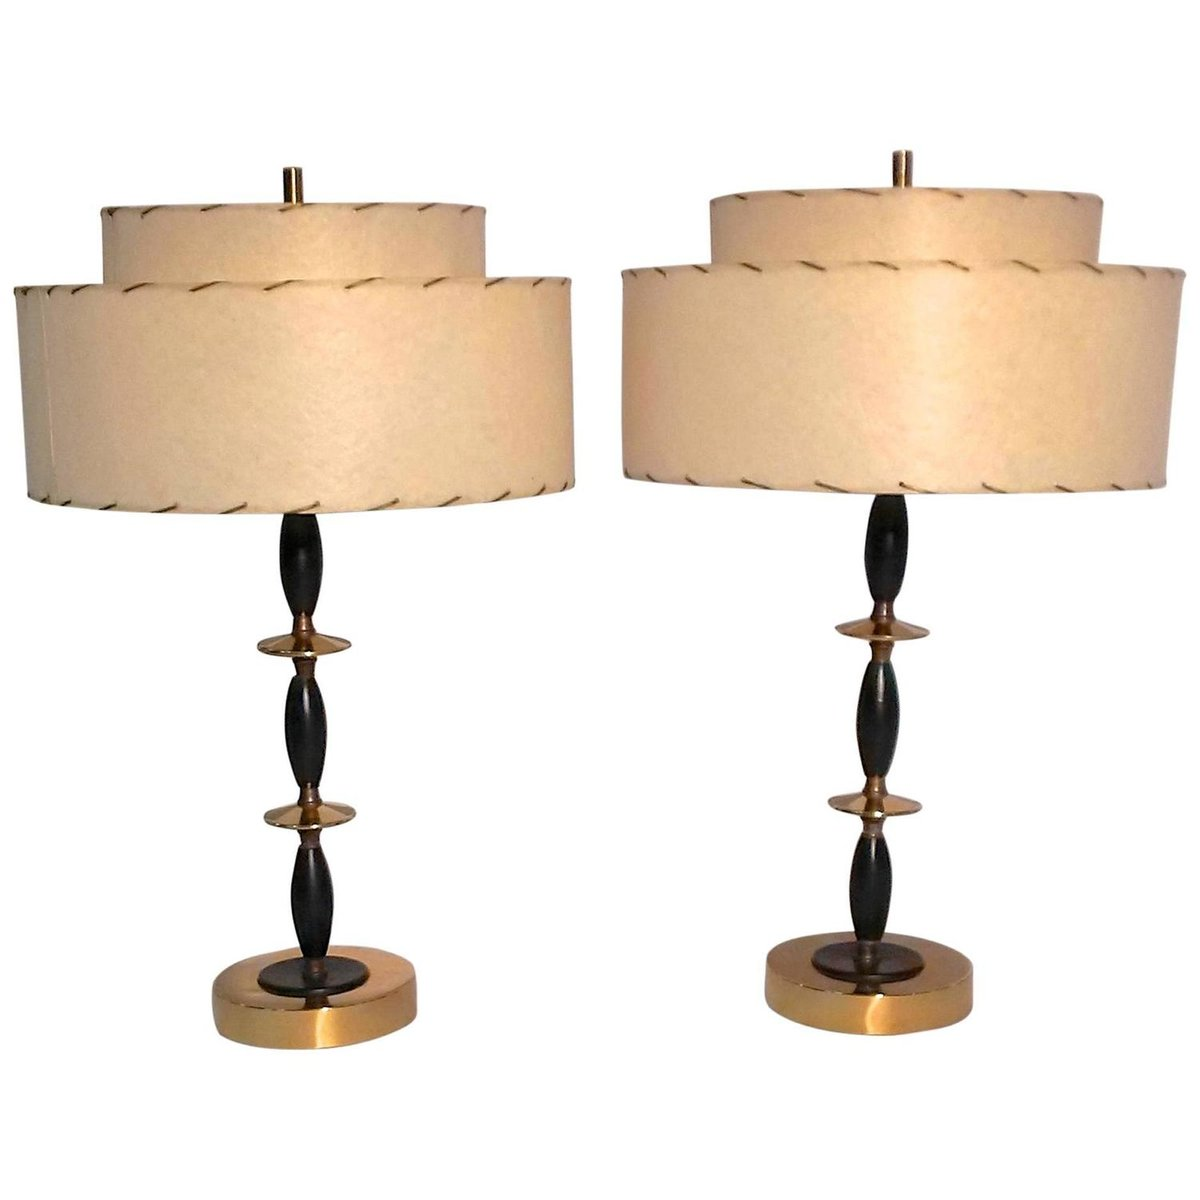 mid century modern atomic table lamps 1950s set of 2 for sale at. Black Bedroom Furniture Sets. Home Design Ideas